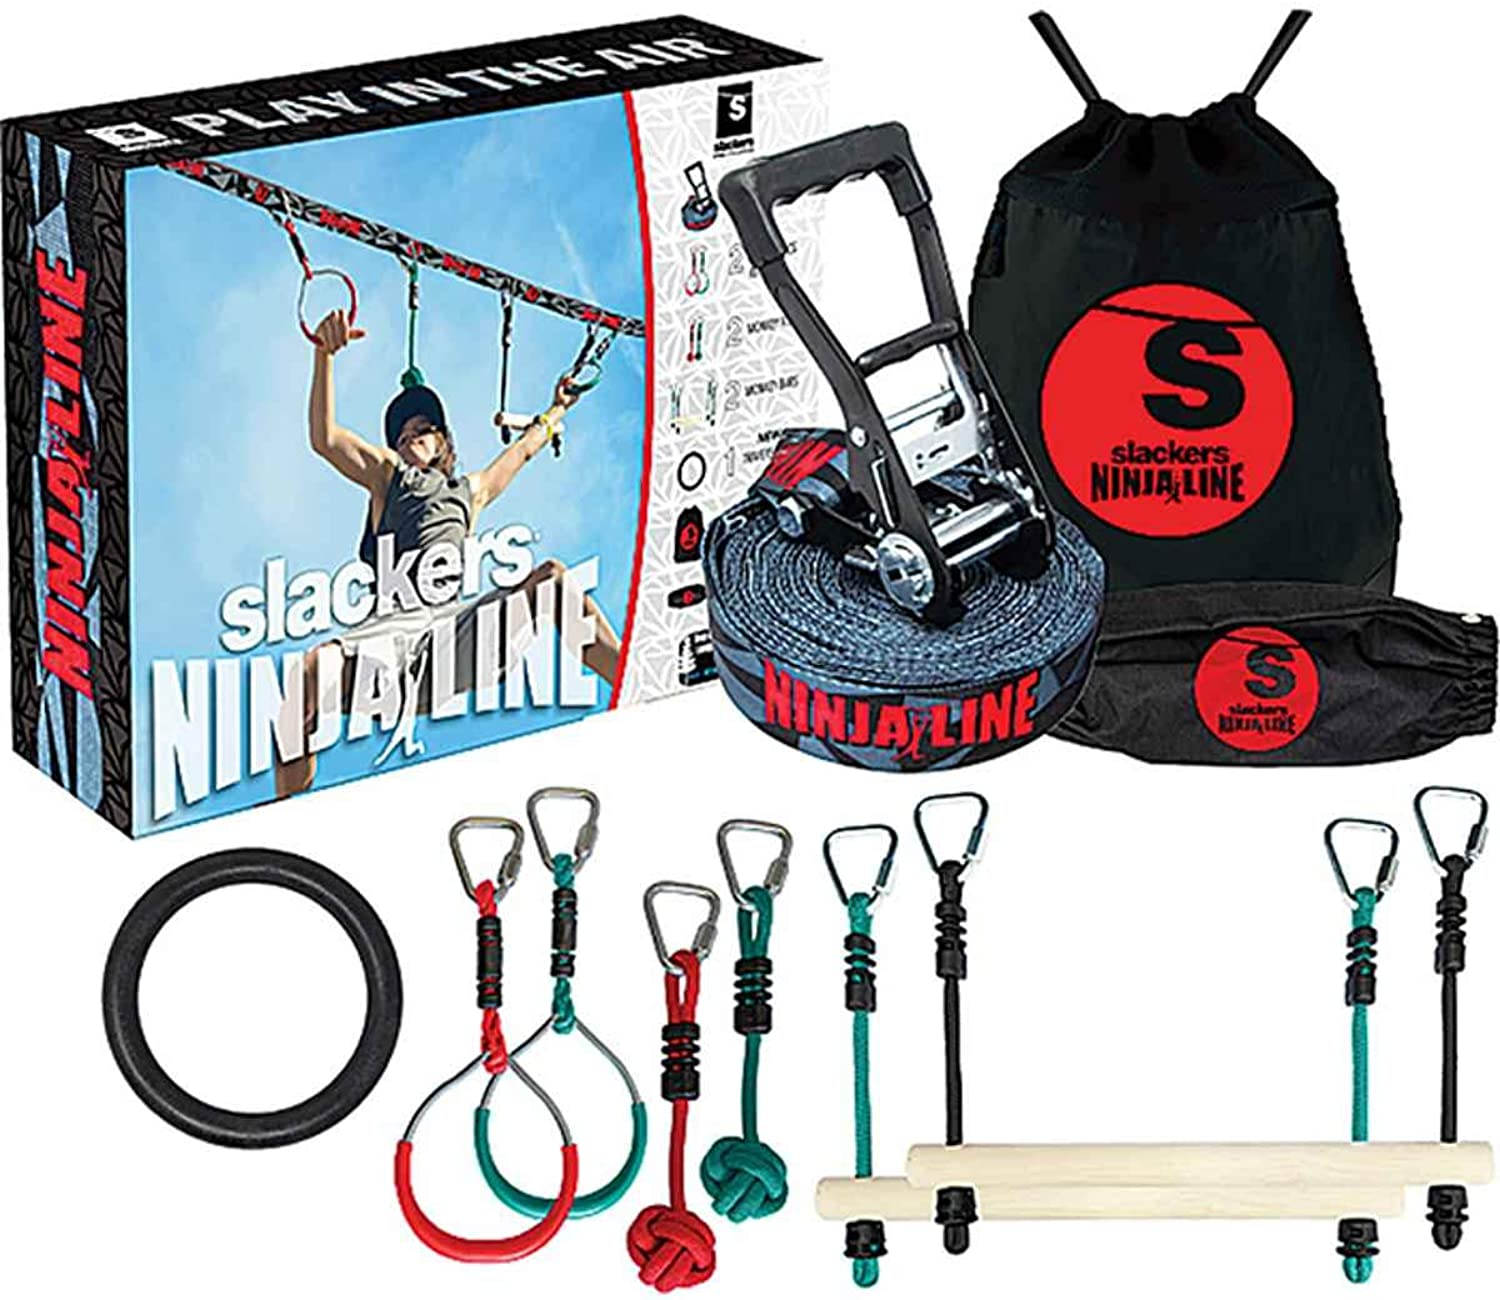 Slackers Ninjaline 36' Intro Kit with 7 Hanging Obstacles, Black